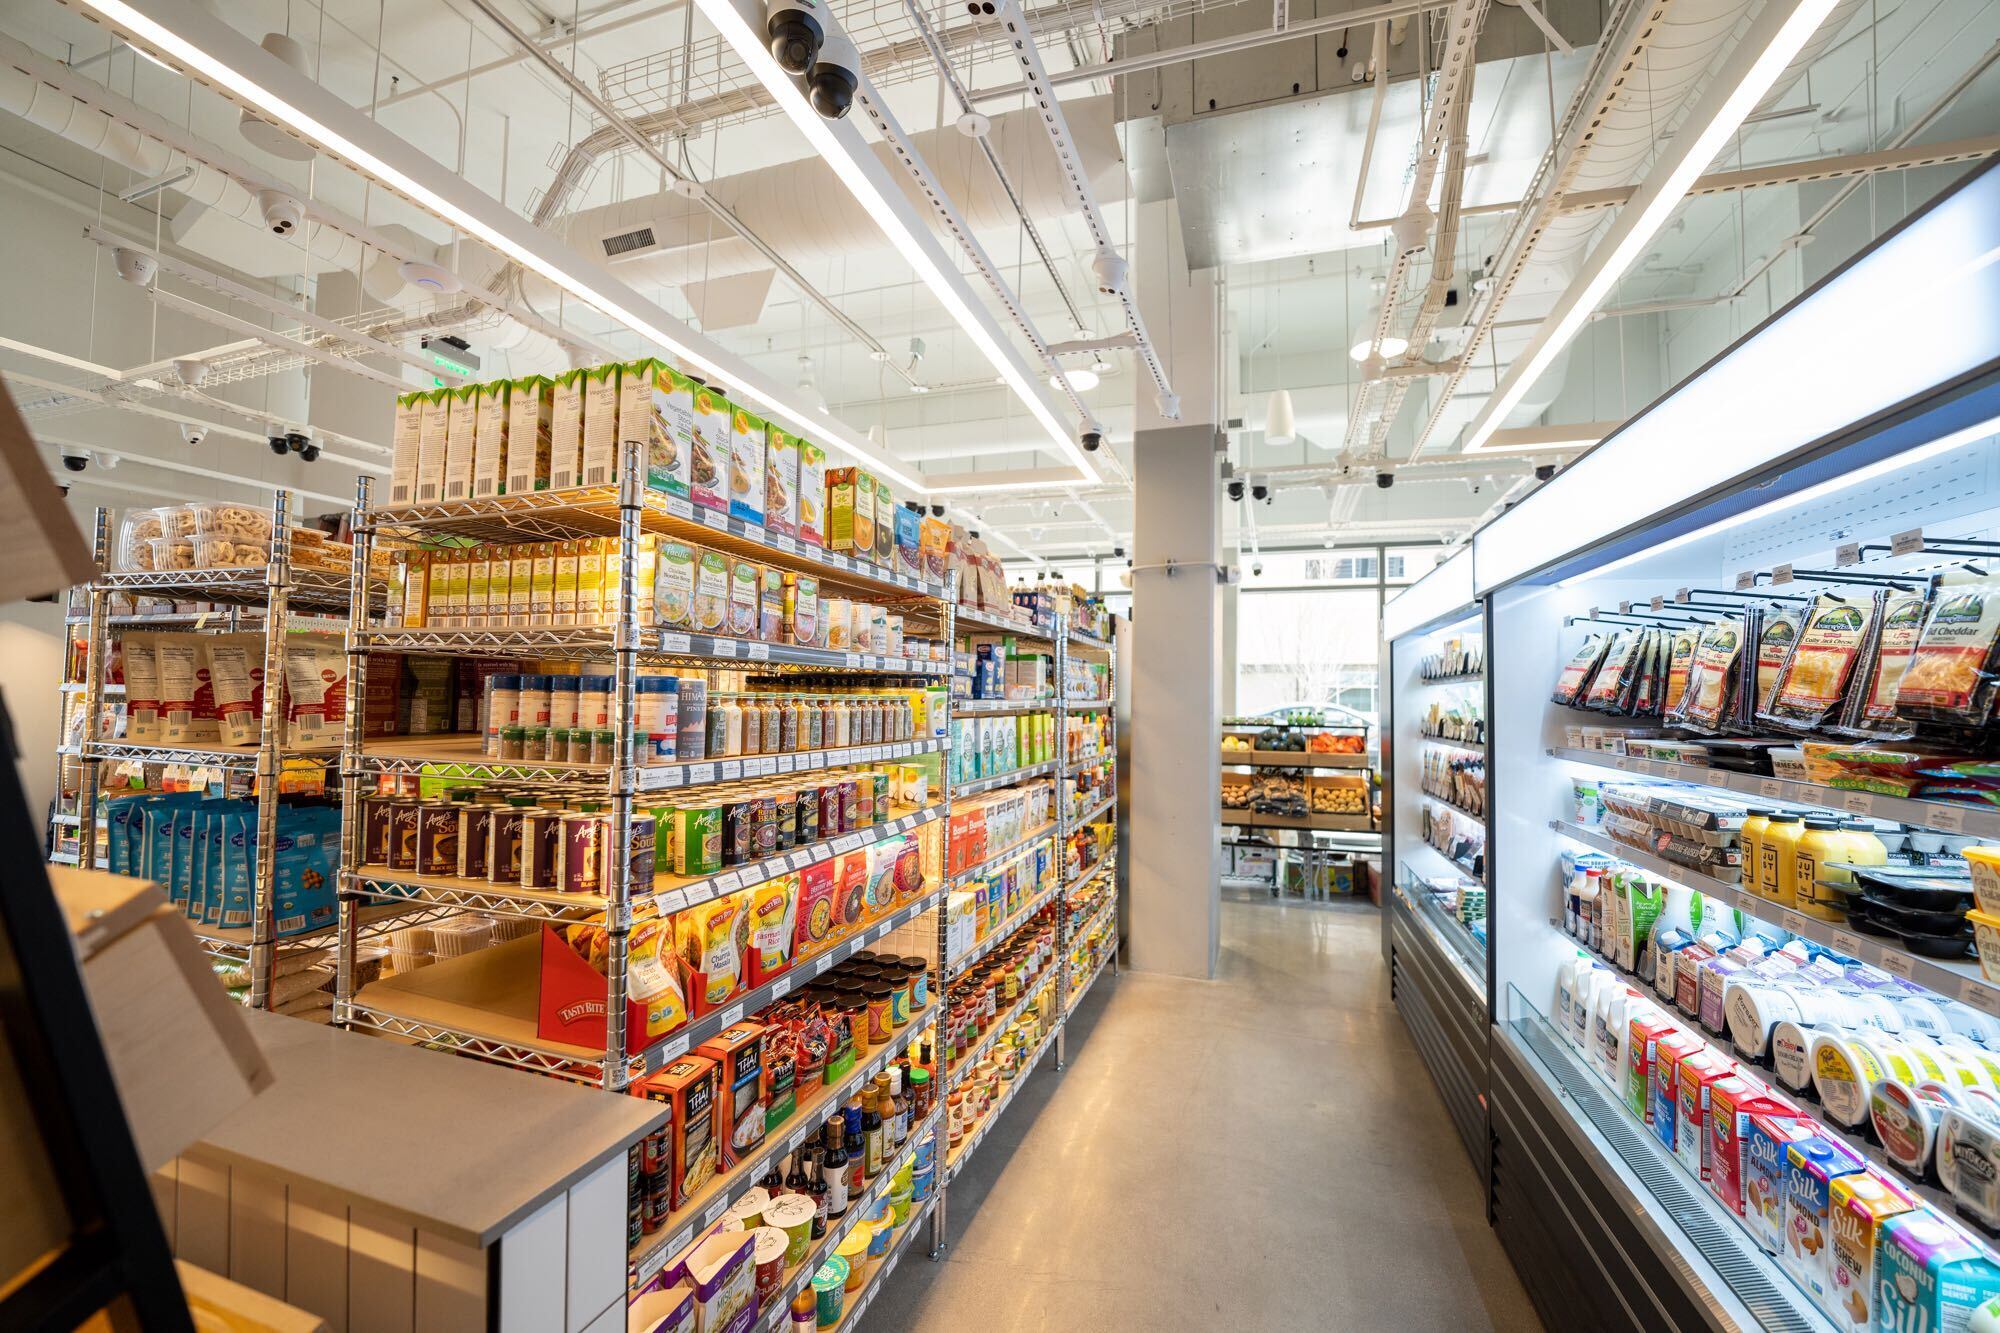 Choice Market opens high-tech store featuring an ice cream shop inside 1